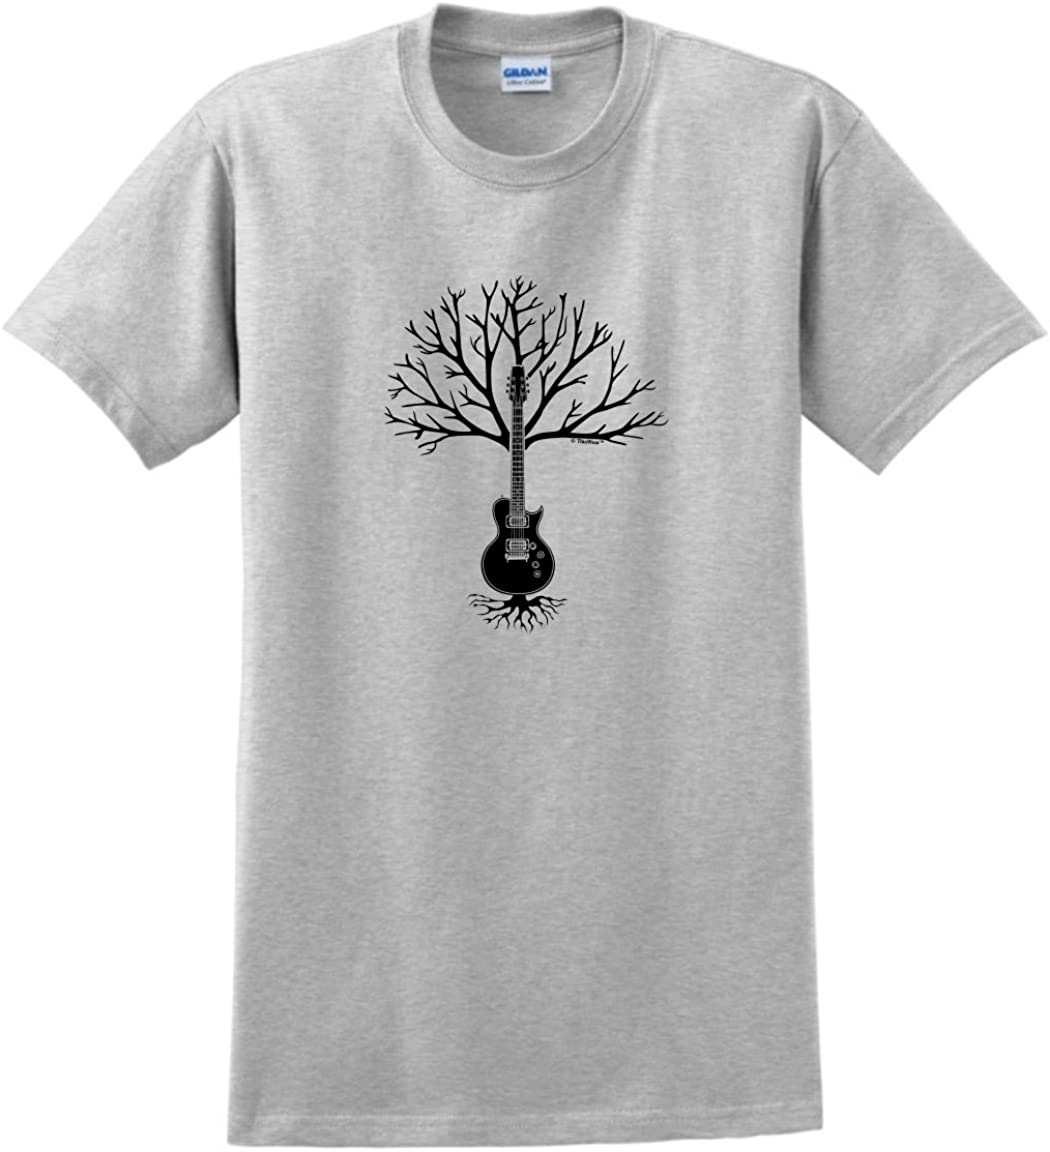 Adults MUSIC SKULL WITH GUITAR AND TREE Black Hoodie X Large